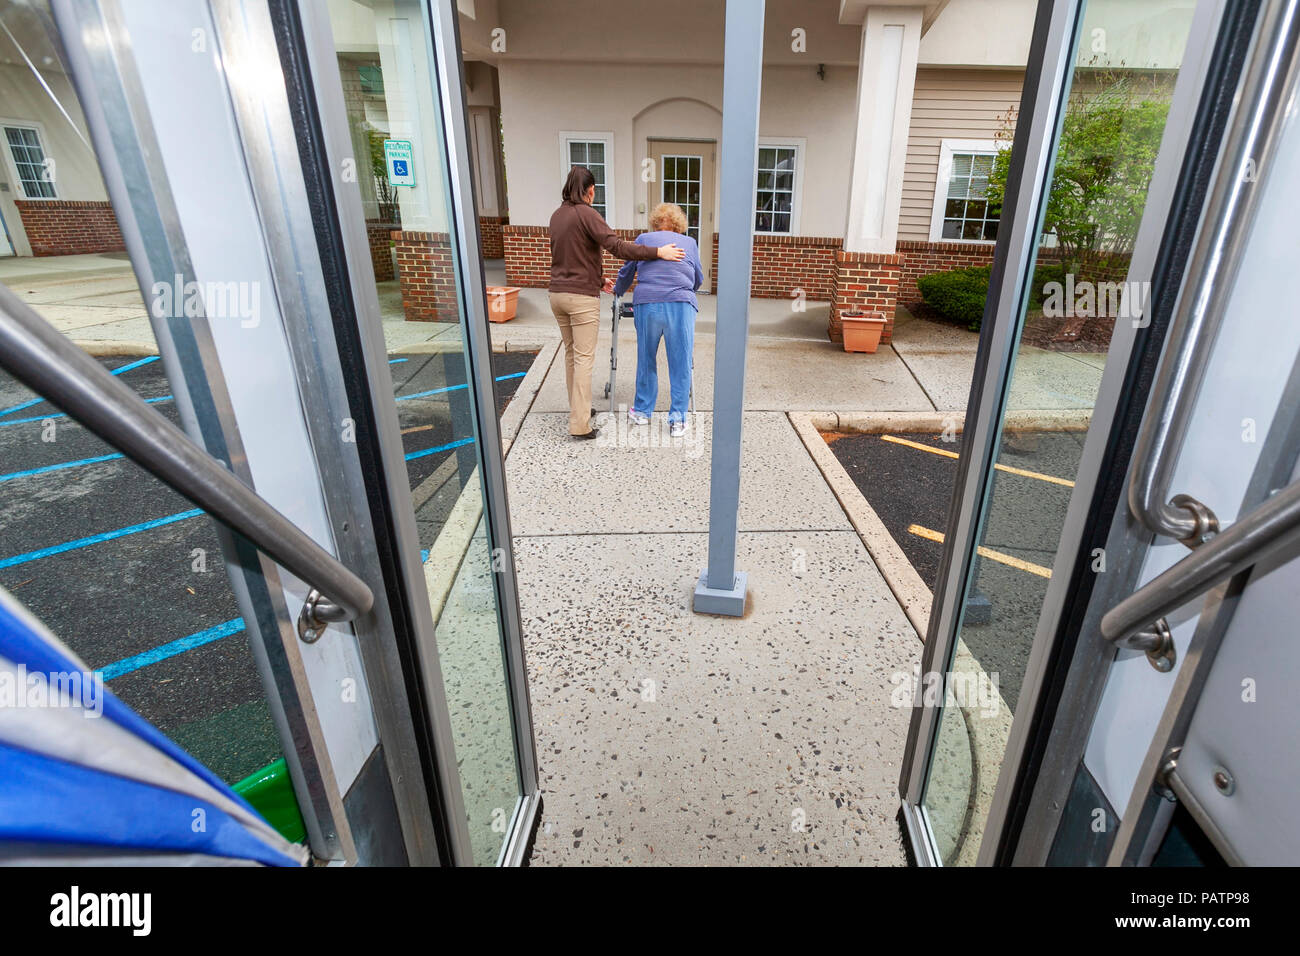 A social worker assists a senior citizen woman with a walker to approach an Adult Day Care Center for the elderly. - Stock Image